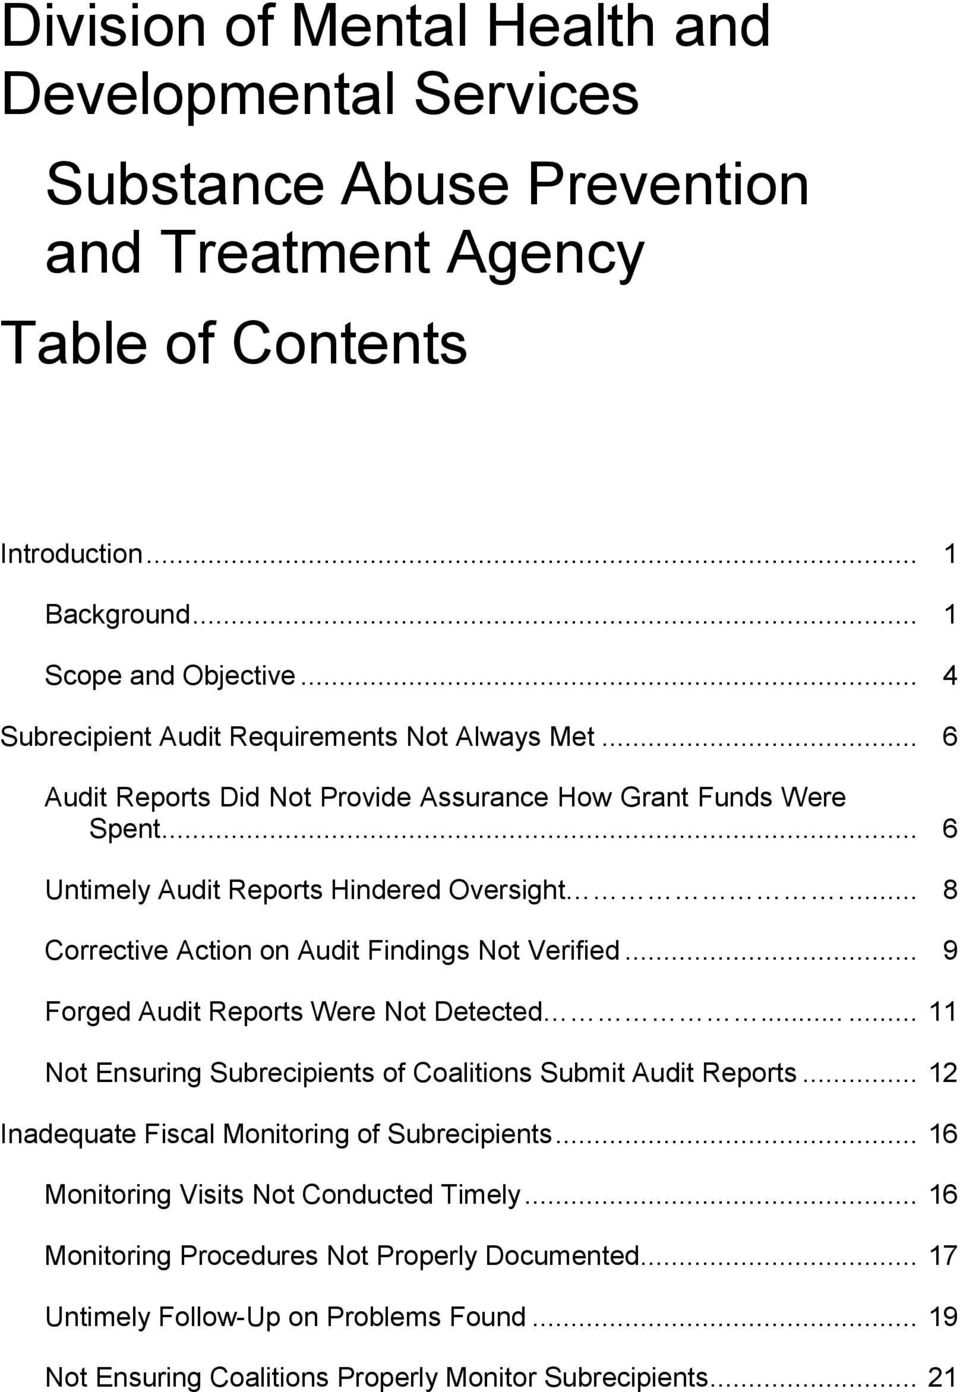 ... 8 Corrective Action on Audit Findings Not Verified... 9 Forged Audit Reports Were Not Detected...... 11 Not Ensuring Subrecipients of Coalitions Submit Audit Reports.